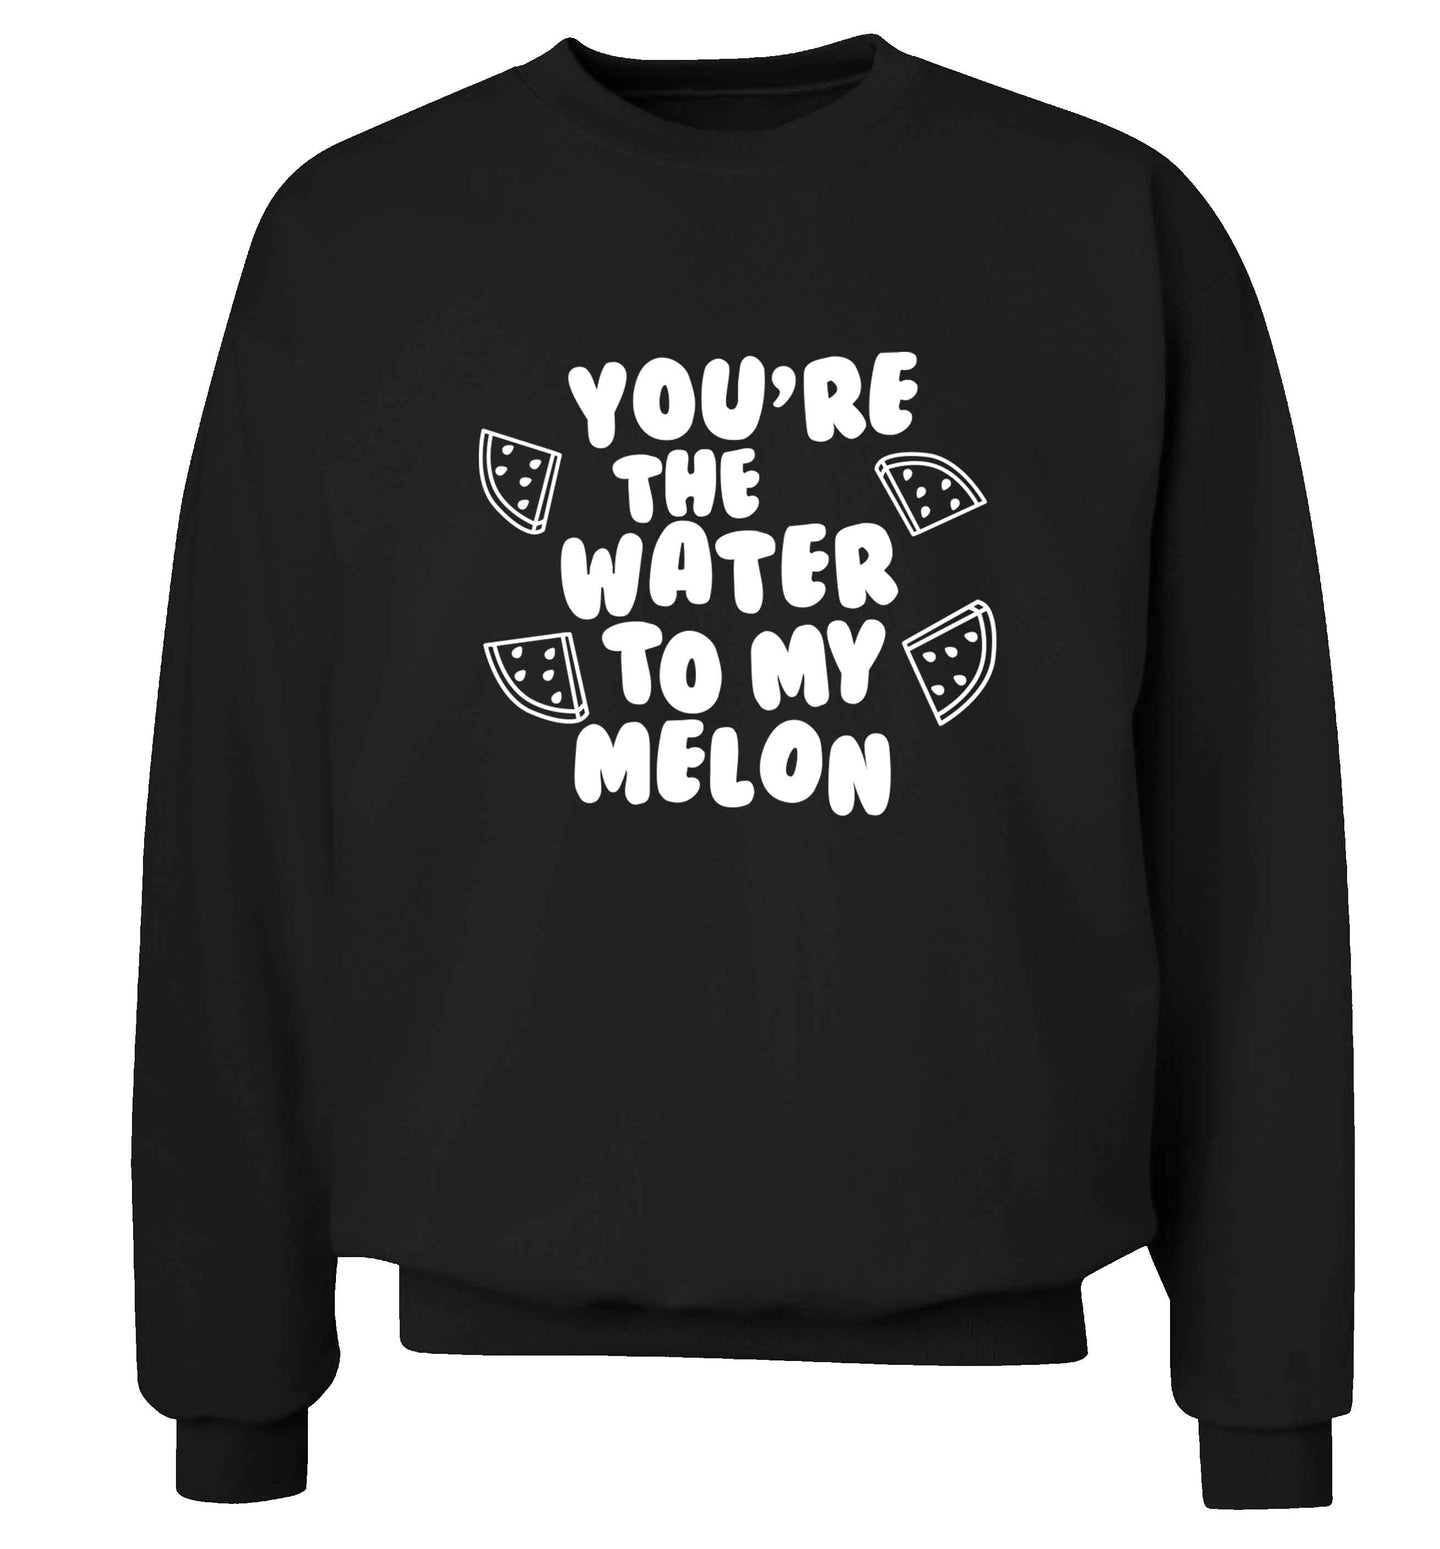 You're the water to my melon adult's unisex black sweater 2XL